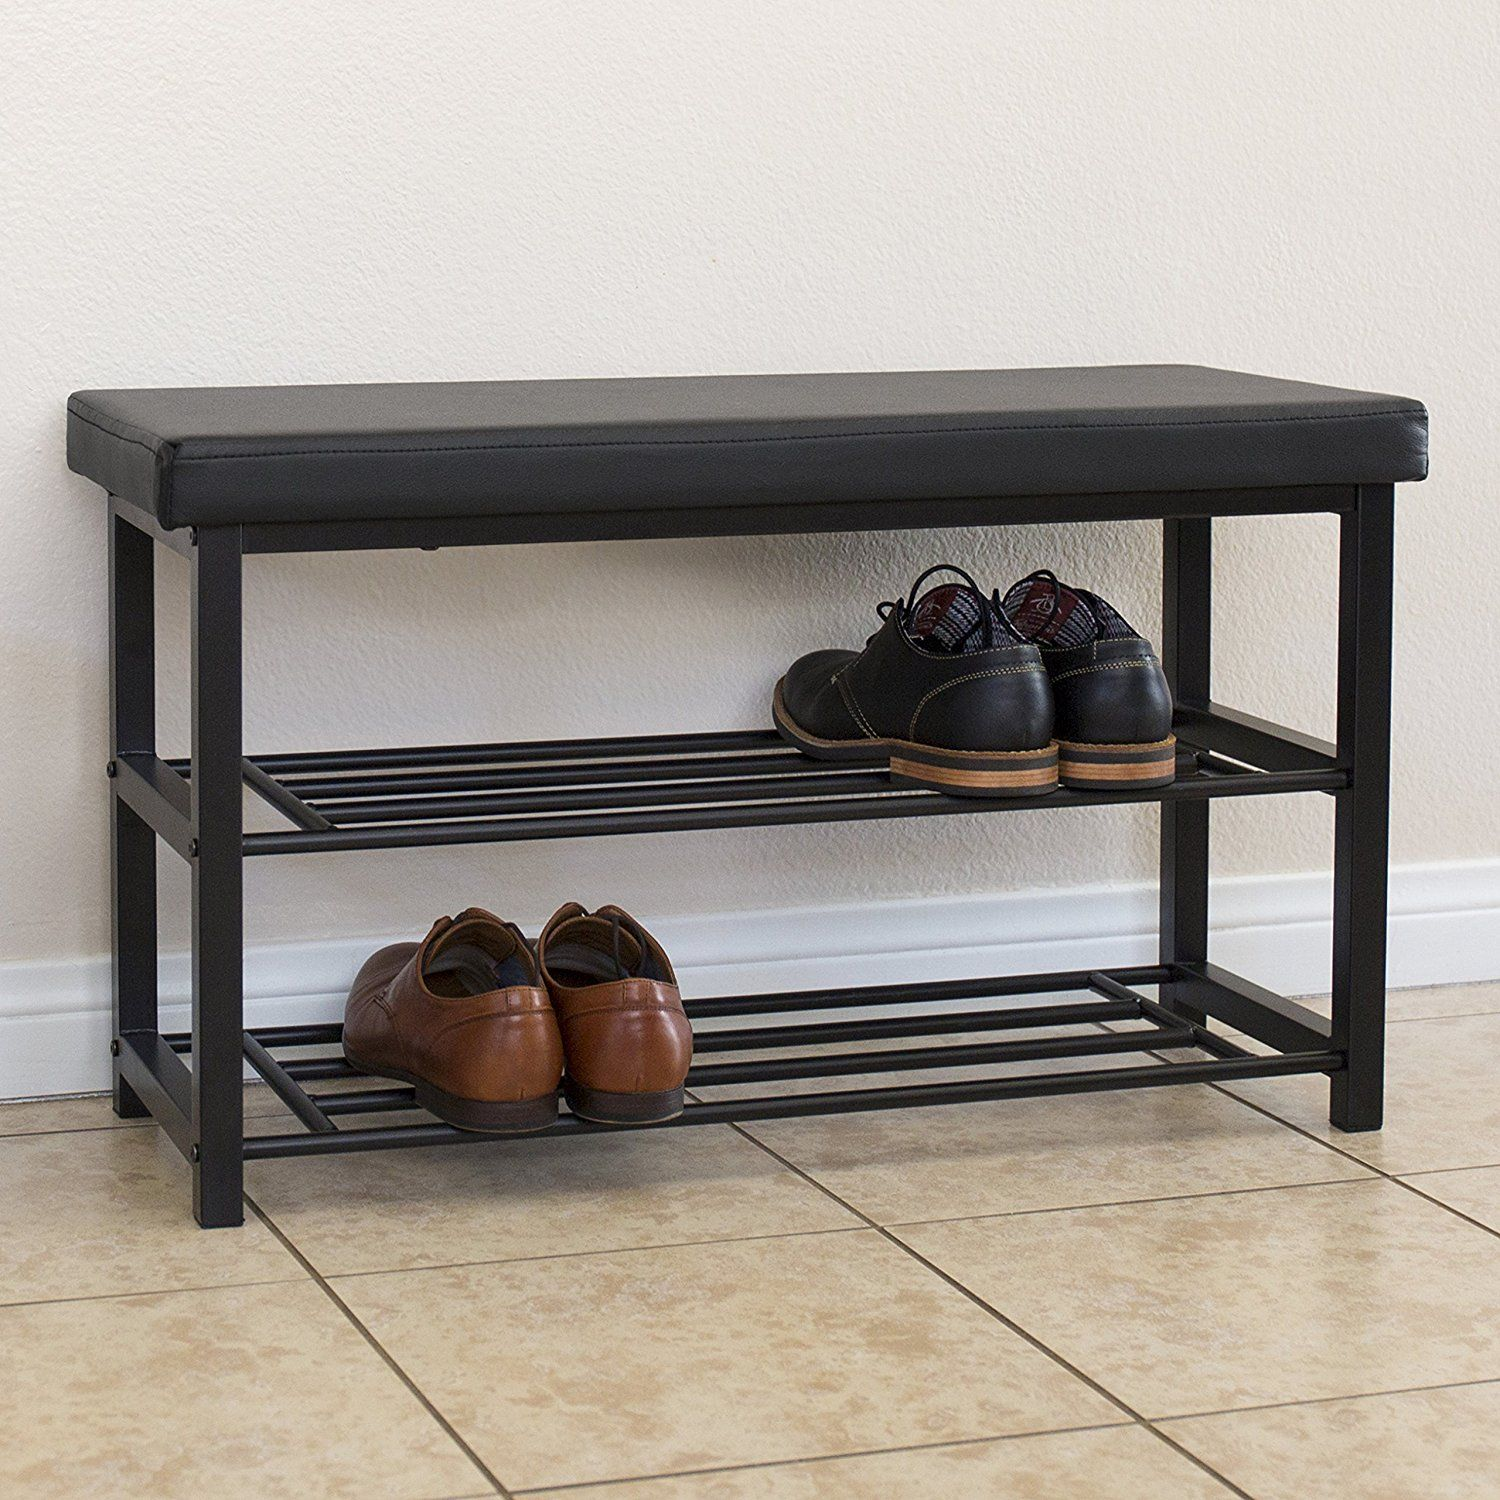 Amazon Com Best Choice Products 2 Tier Metal Storage Bench Shoe Rack Organize W Leather Top Black Kitche Metal Shoe Rack Shoe Rack Bench Shoe Rack Entryway